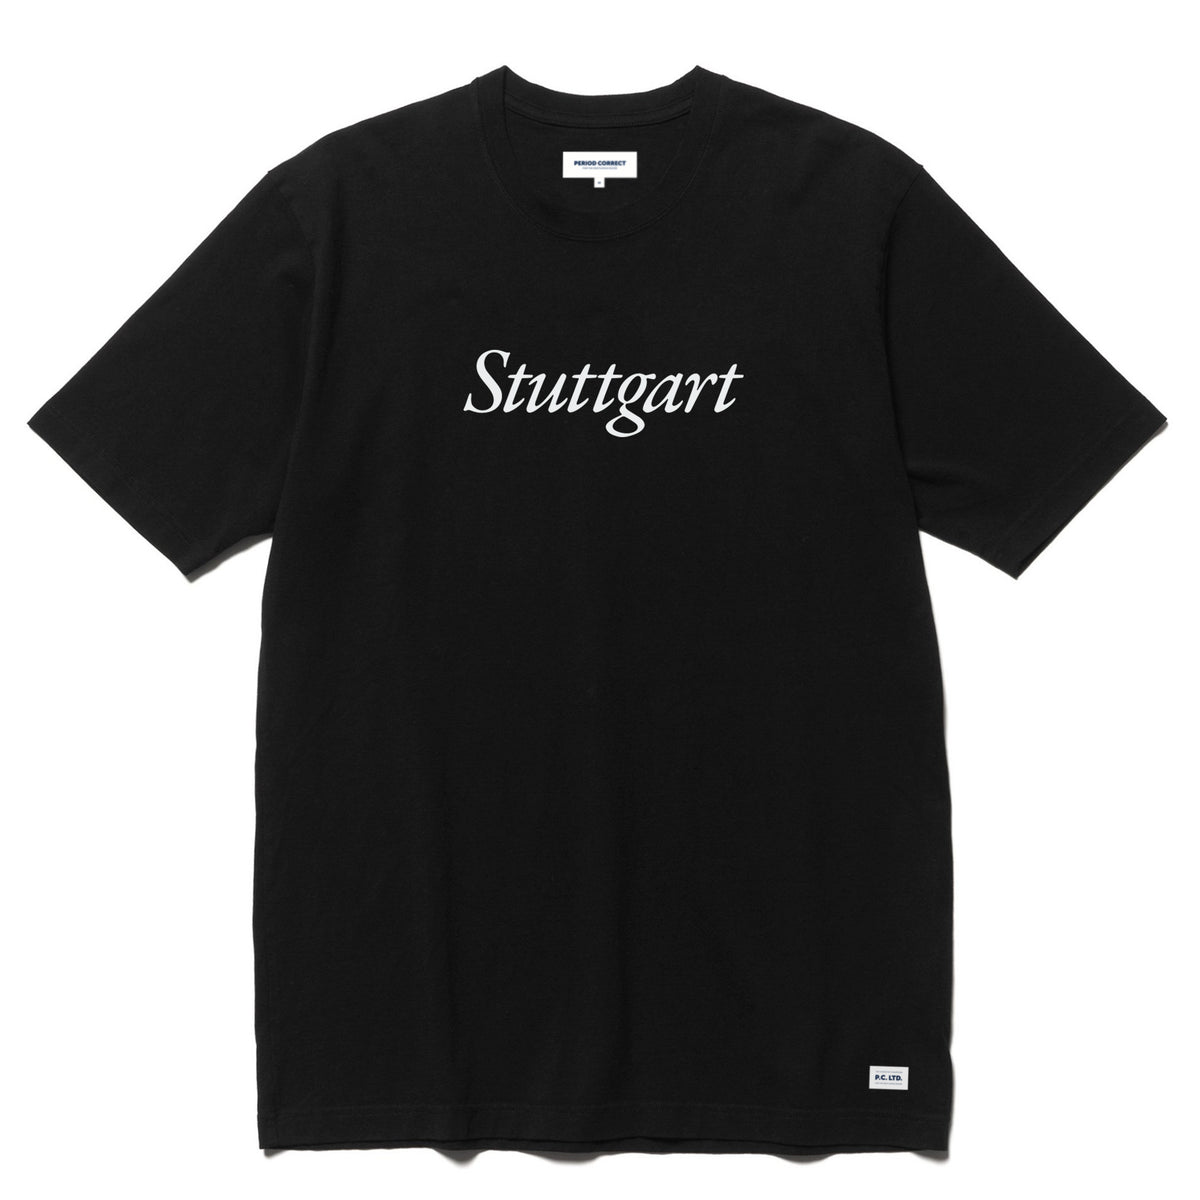 PC STUTTGART T-SHIRT BLACK